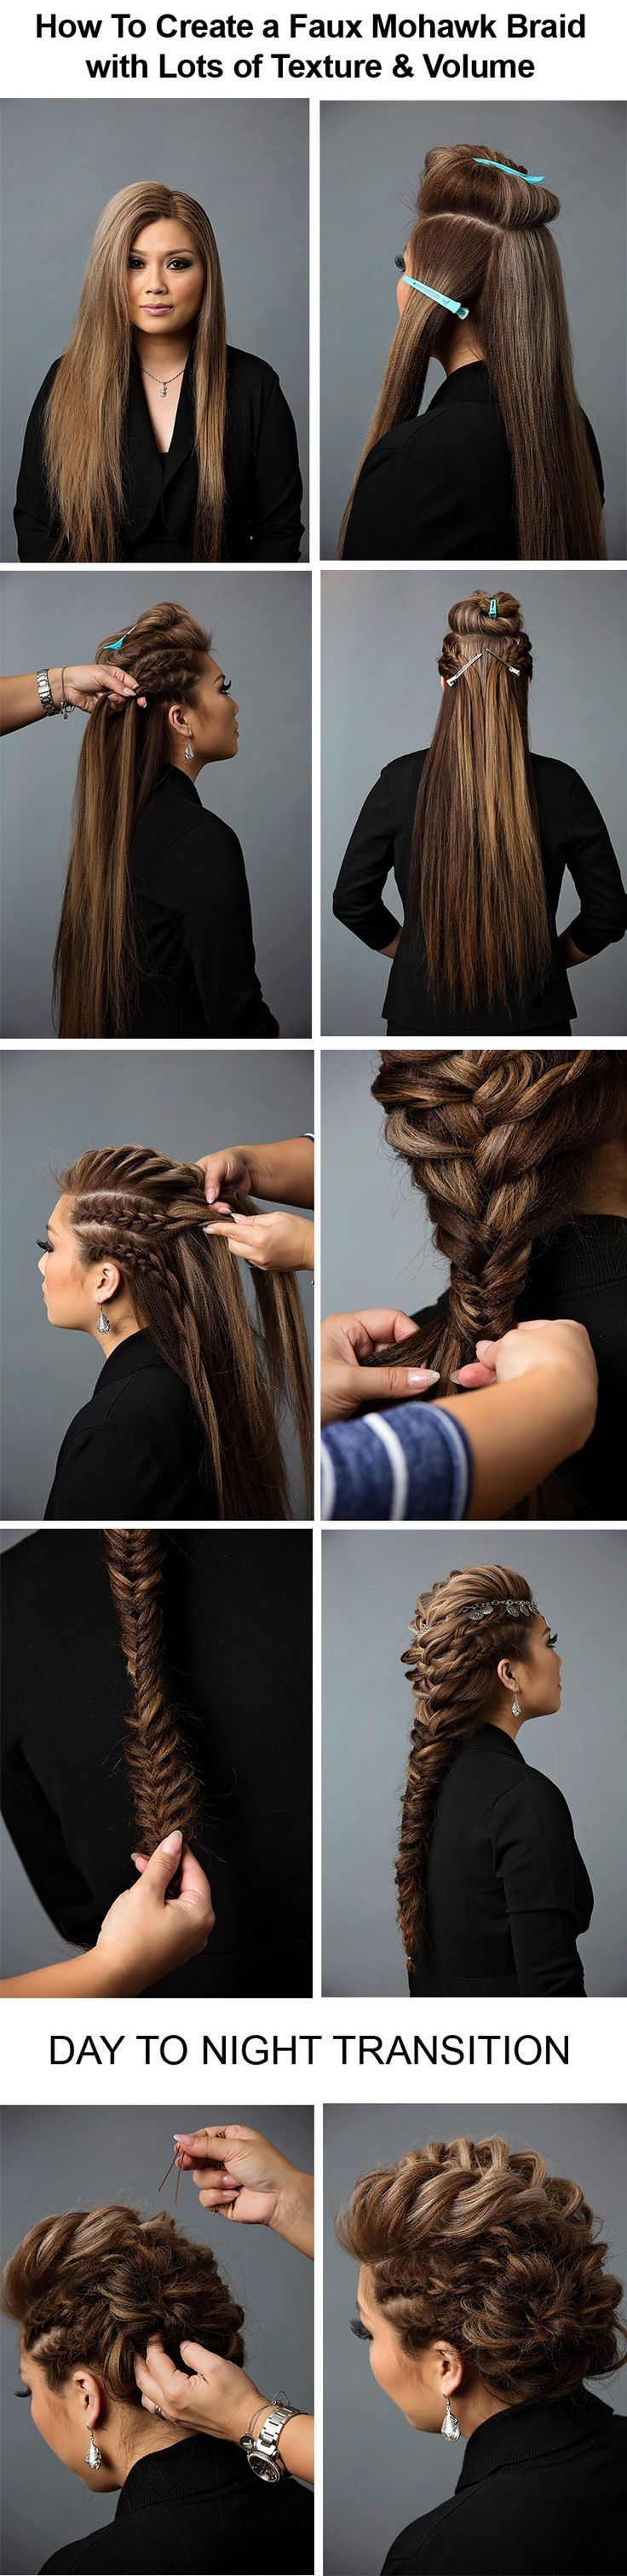 126 best Hairstyles Braids images on Pinterest